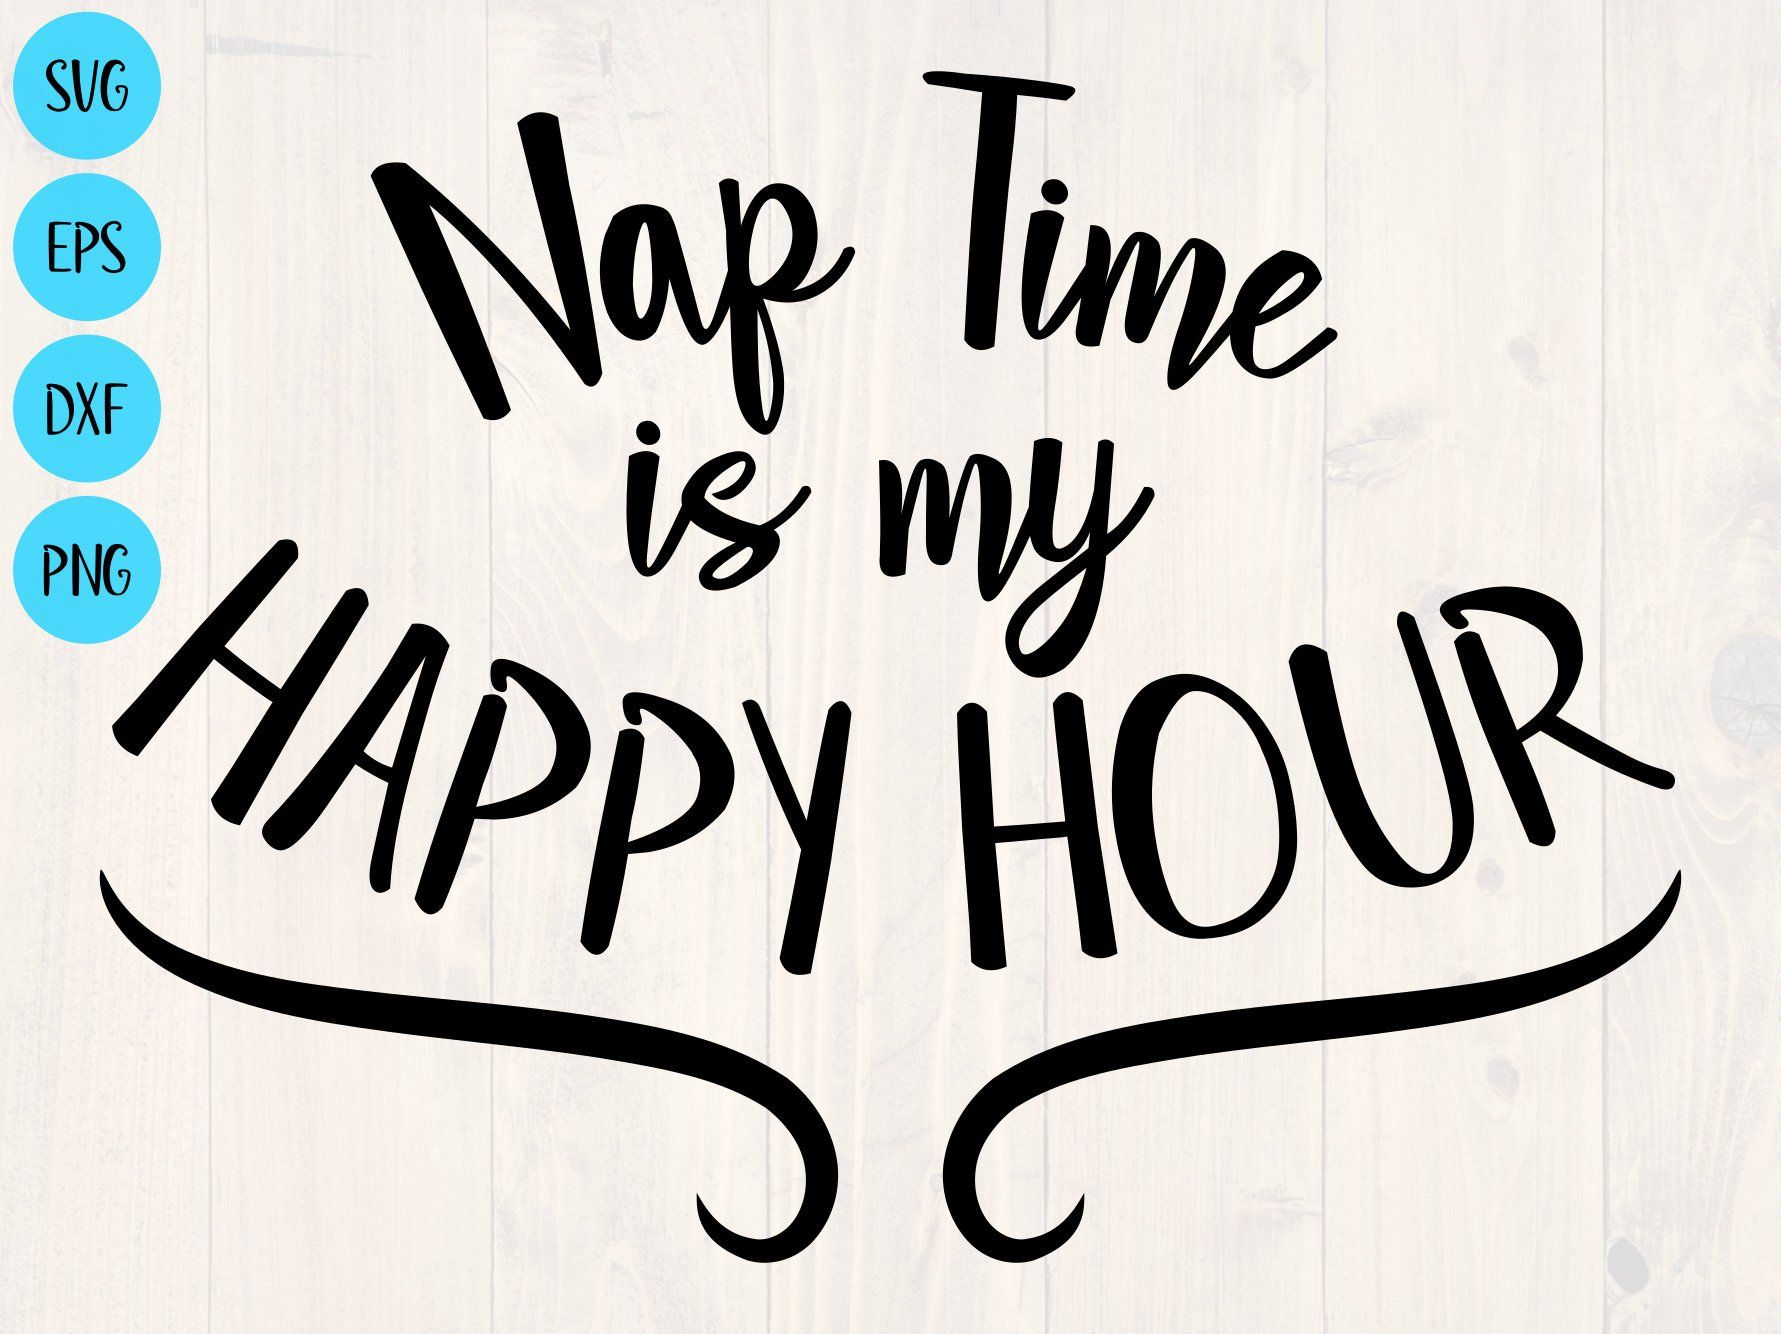 Nap Time Is My Happy Hour Svg Png Eps And Dxf Funny Pajamas Etsy In 2021 Nap Quotes Funny Nap Quotes Pajamas Quotes